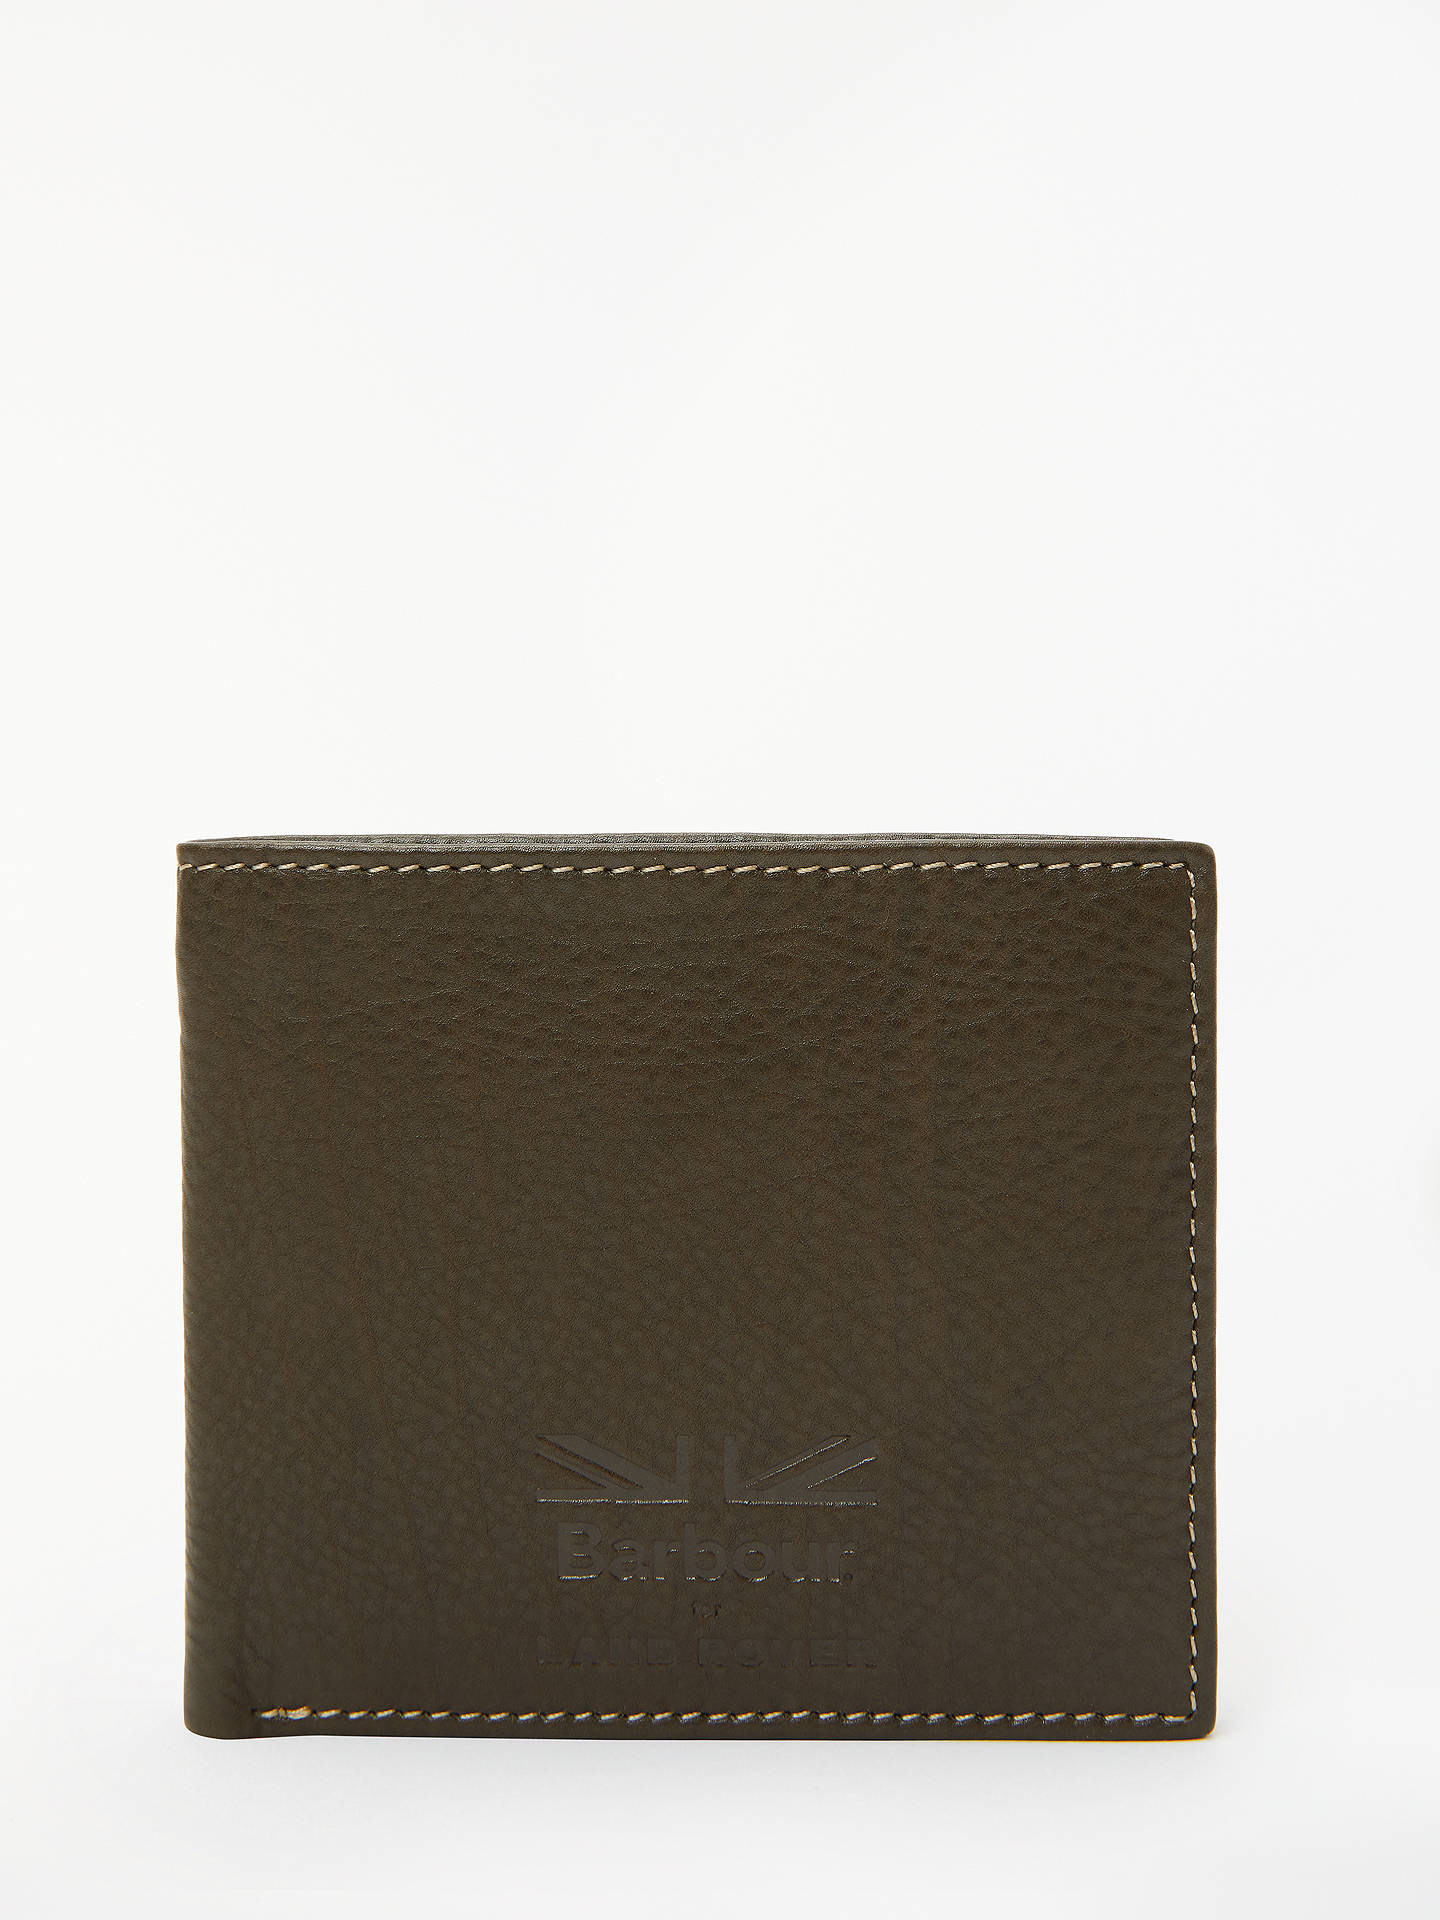 BuyBarbour Land Rover Defender Leather Wallet, Brown Online at johnlewis.com